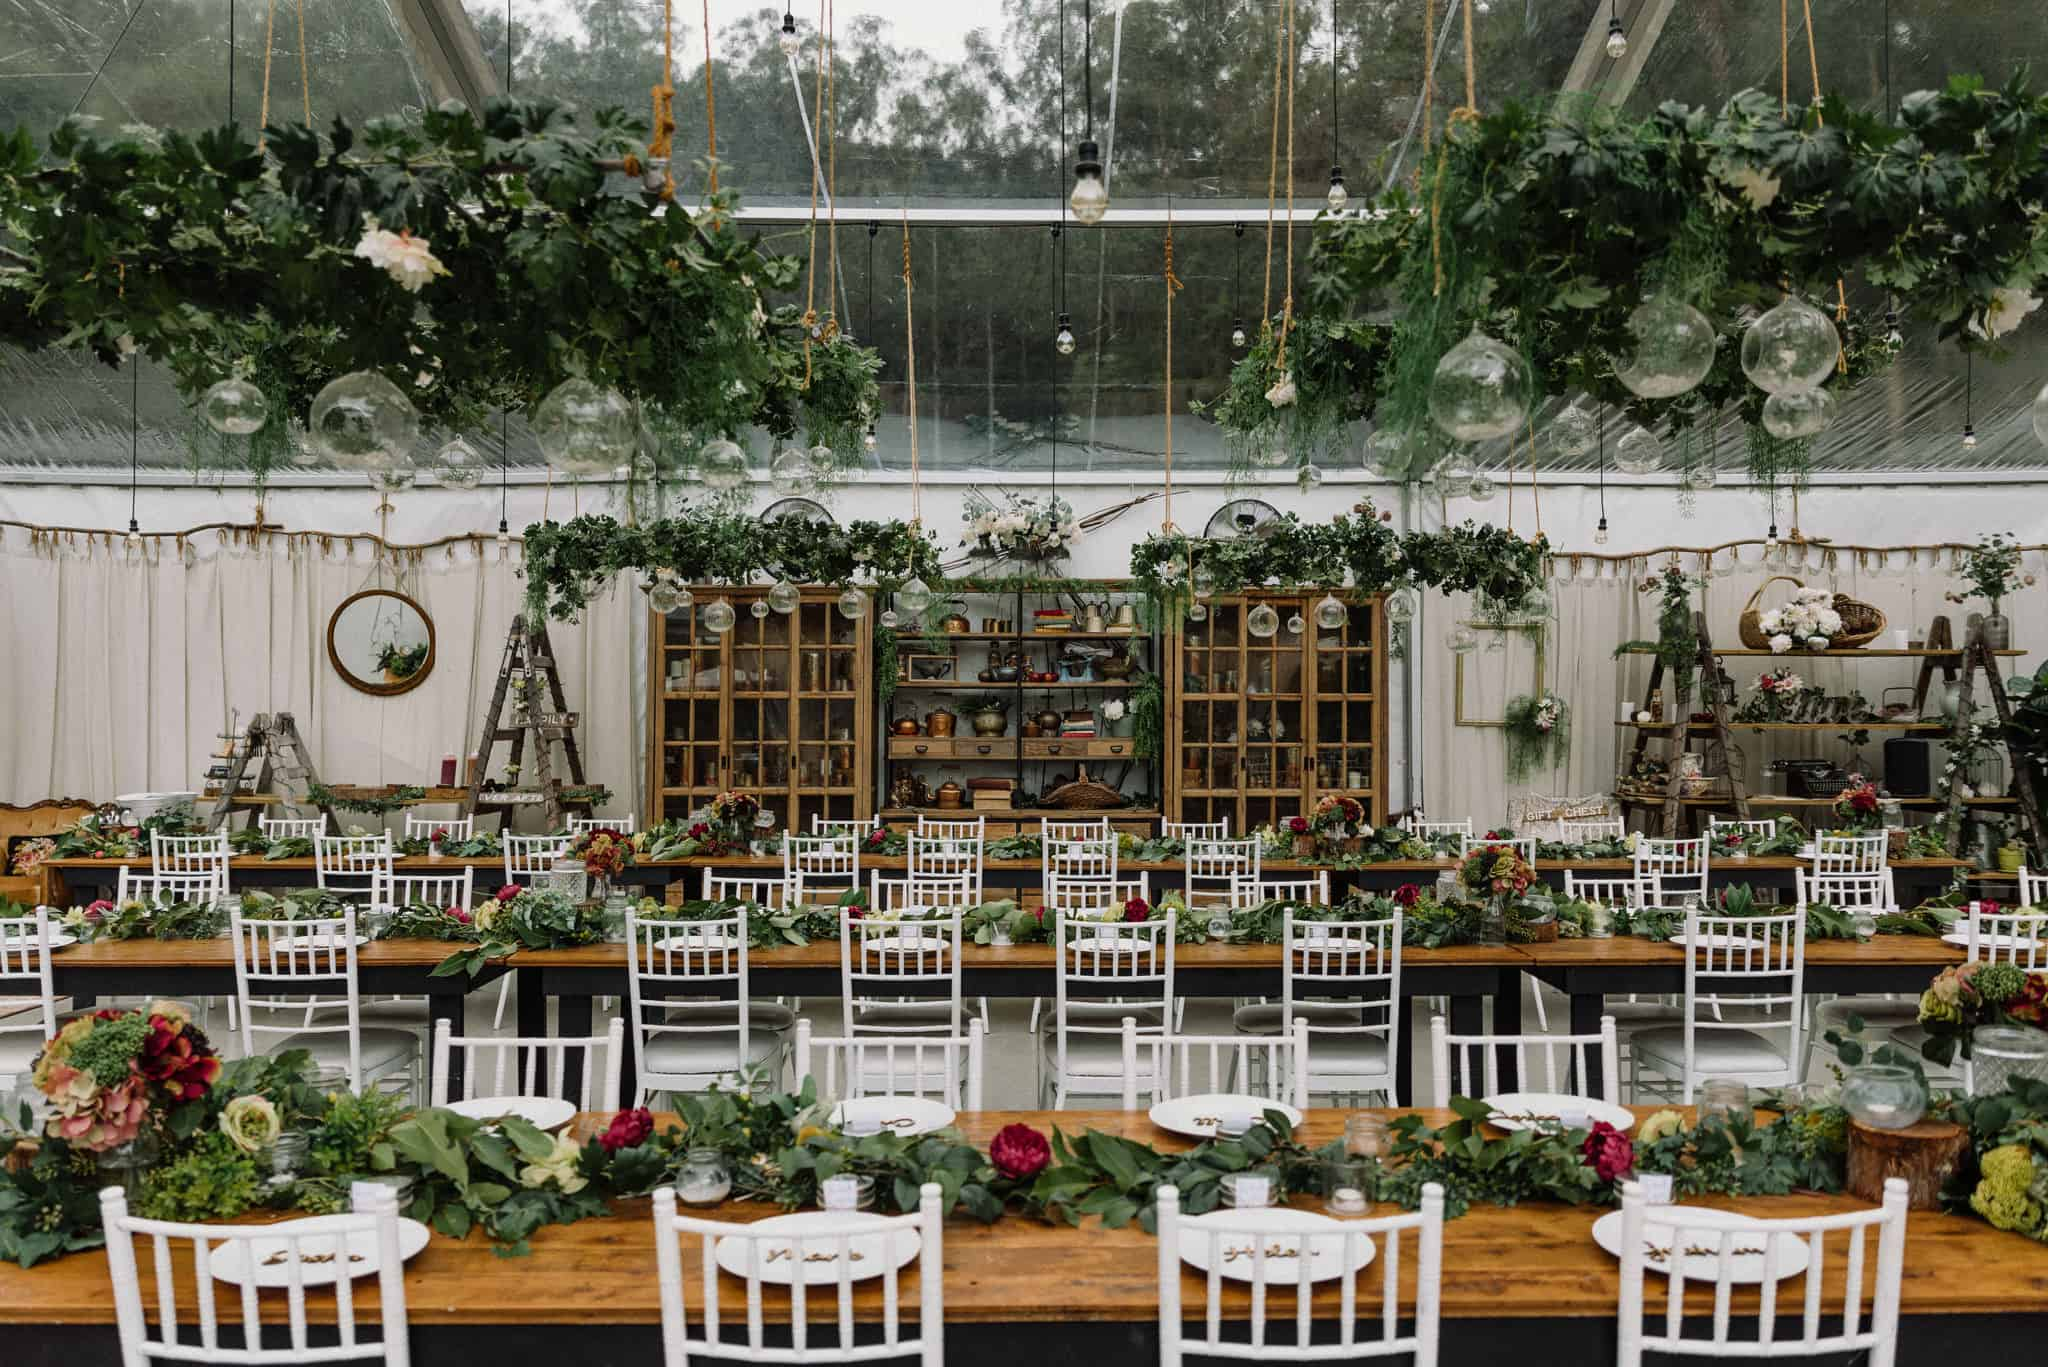 Rustic whimsical wedding reception setup with hanging greenery and wooden tables Captured by James White Hunter Valley Wedding Photographer